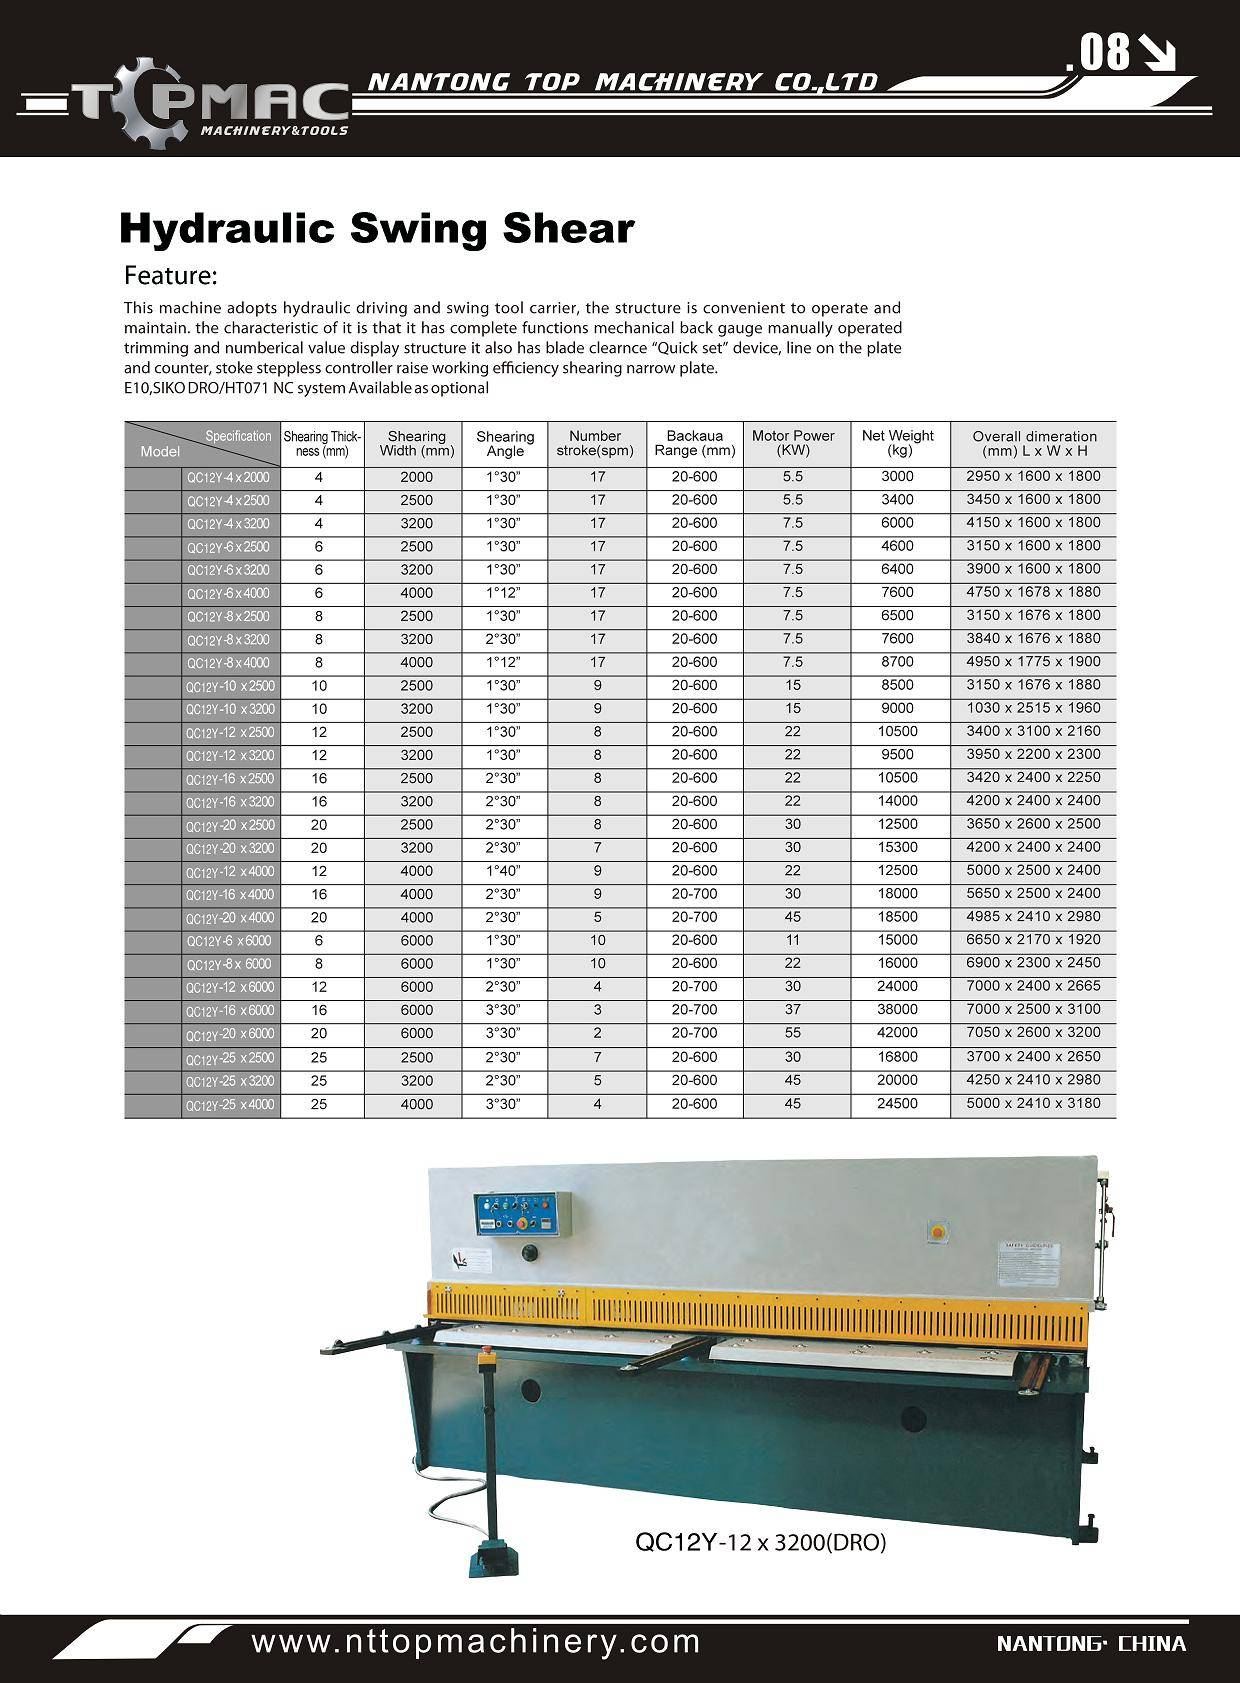 Hydraulic Swing Machine